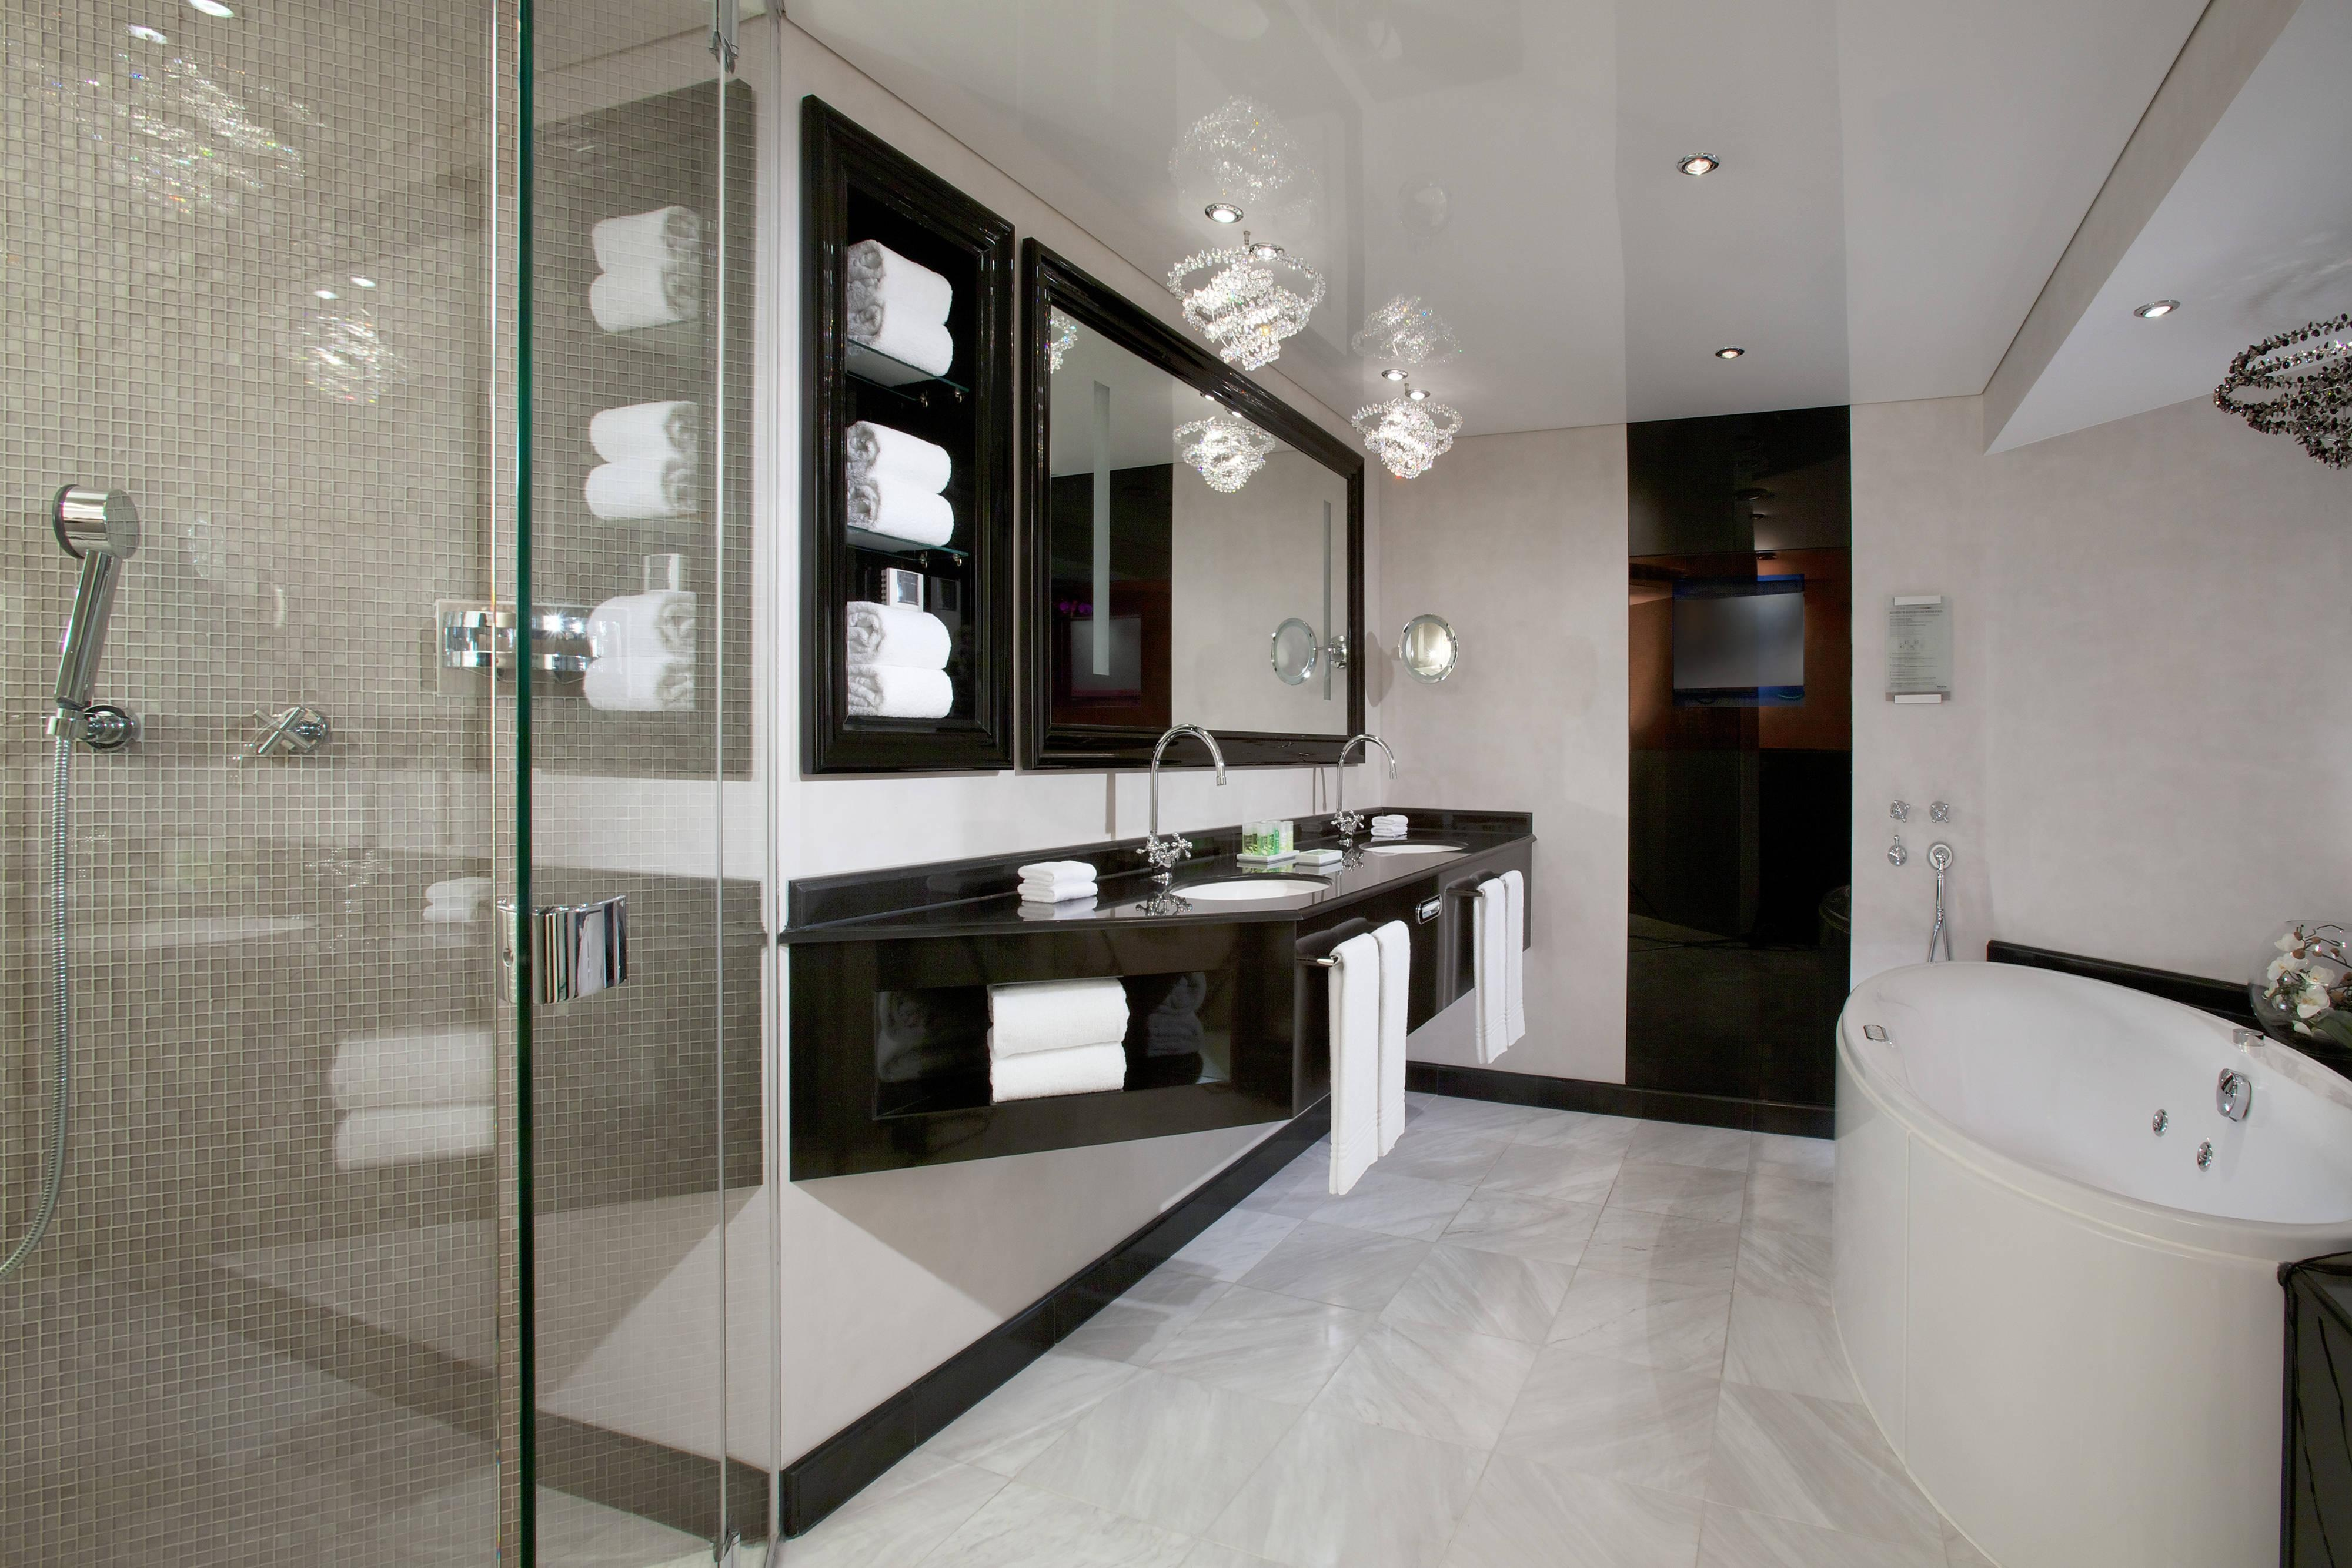 Spacious bathroom of the Presidential suite at The Westin Grand hotel Berlin